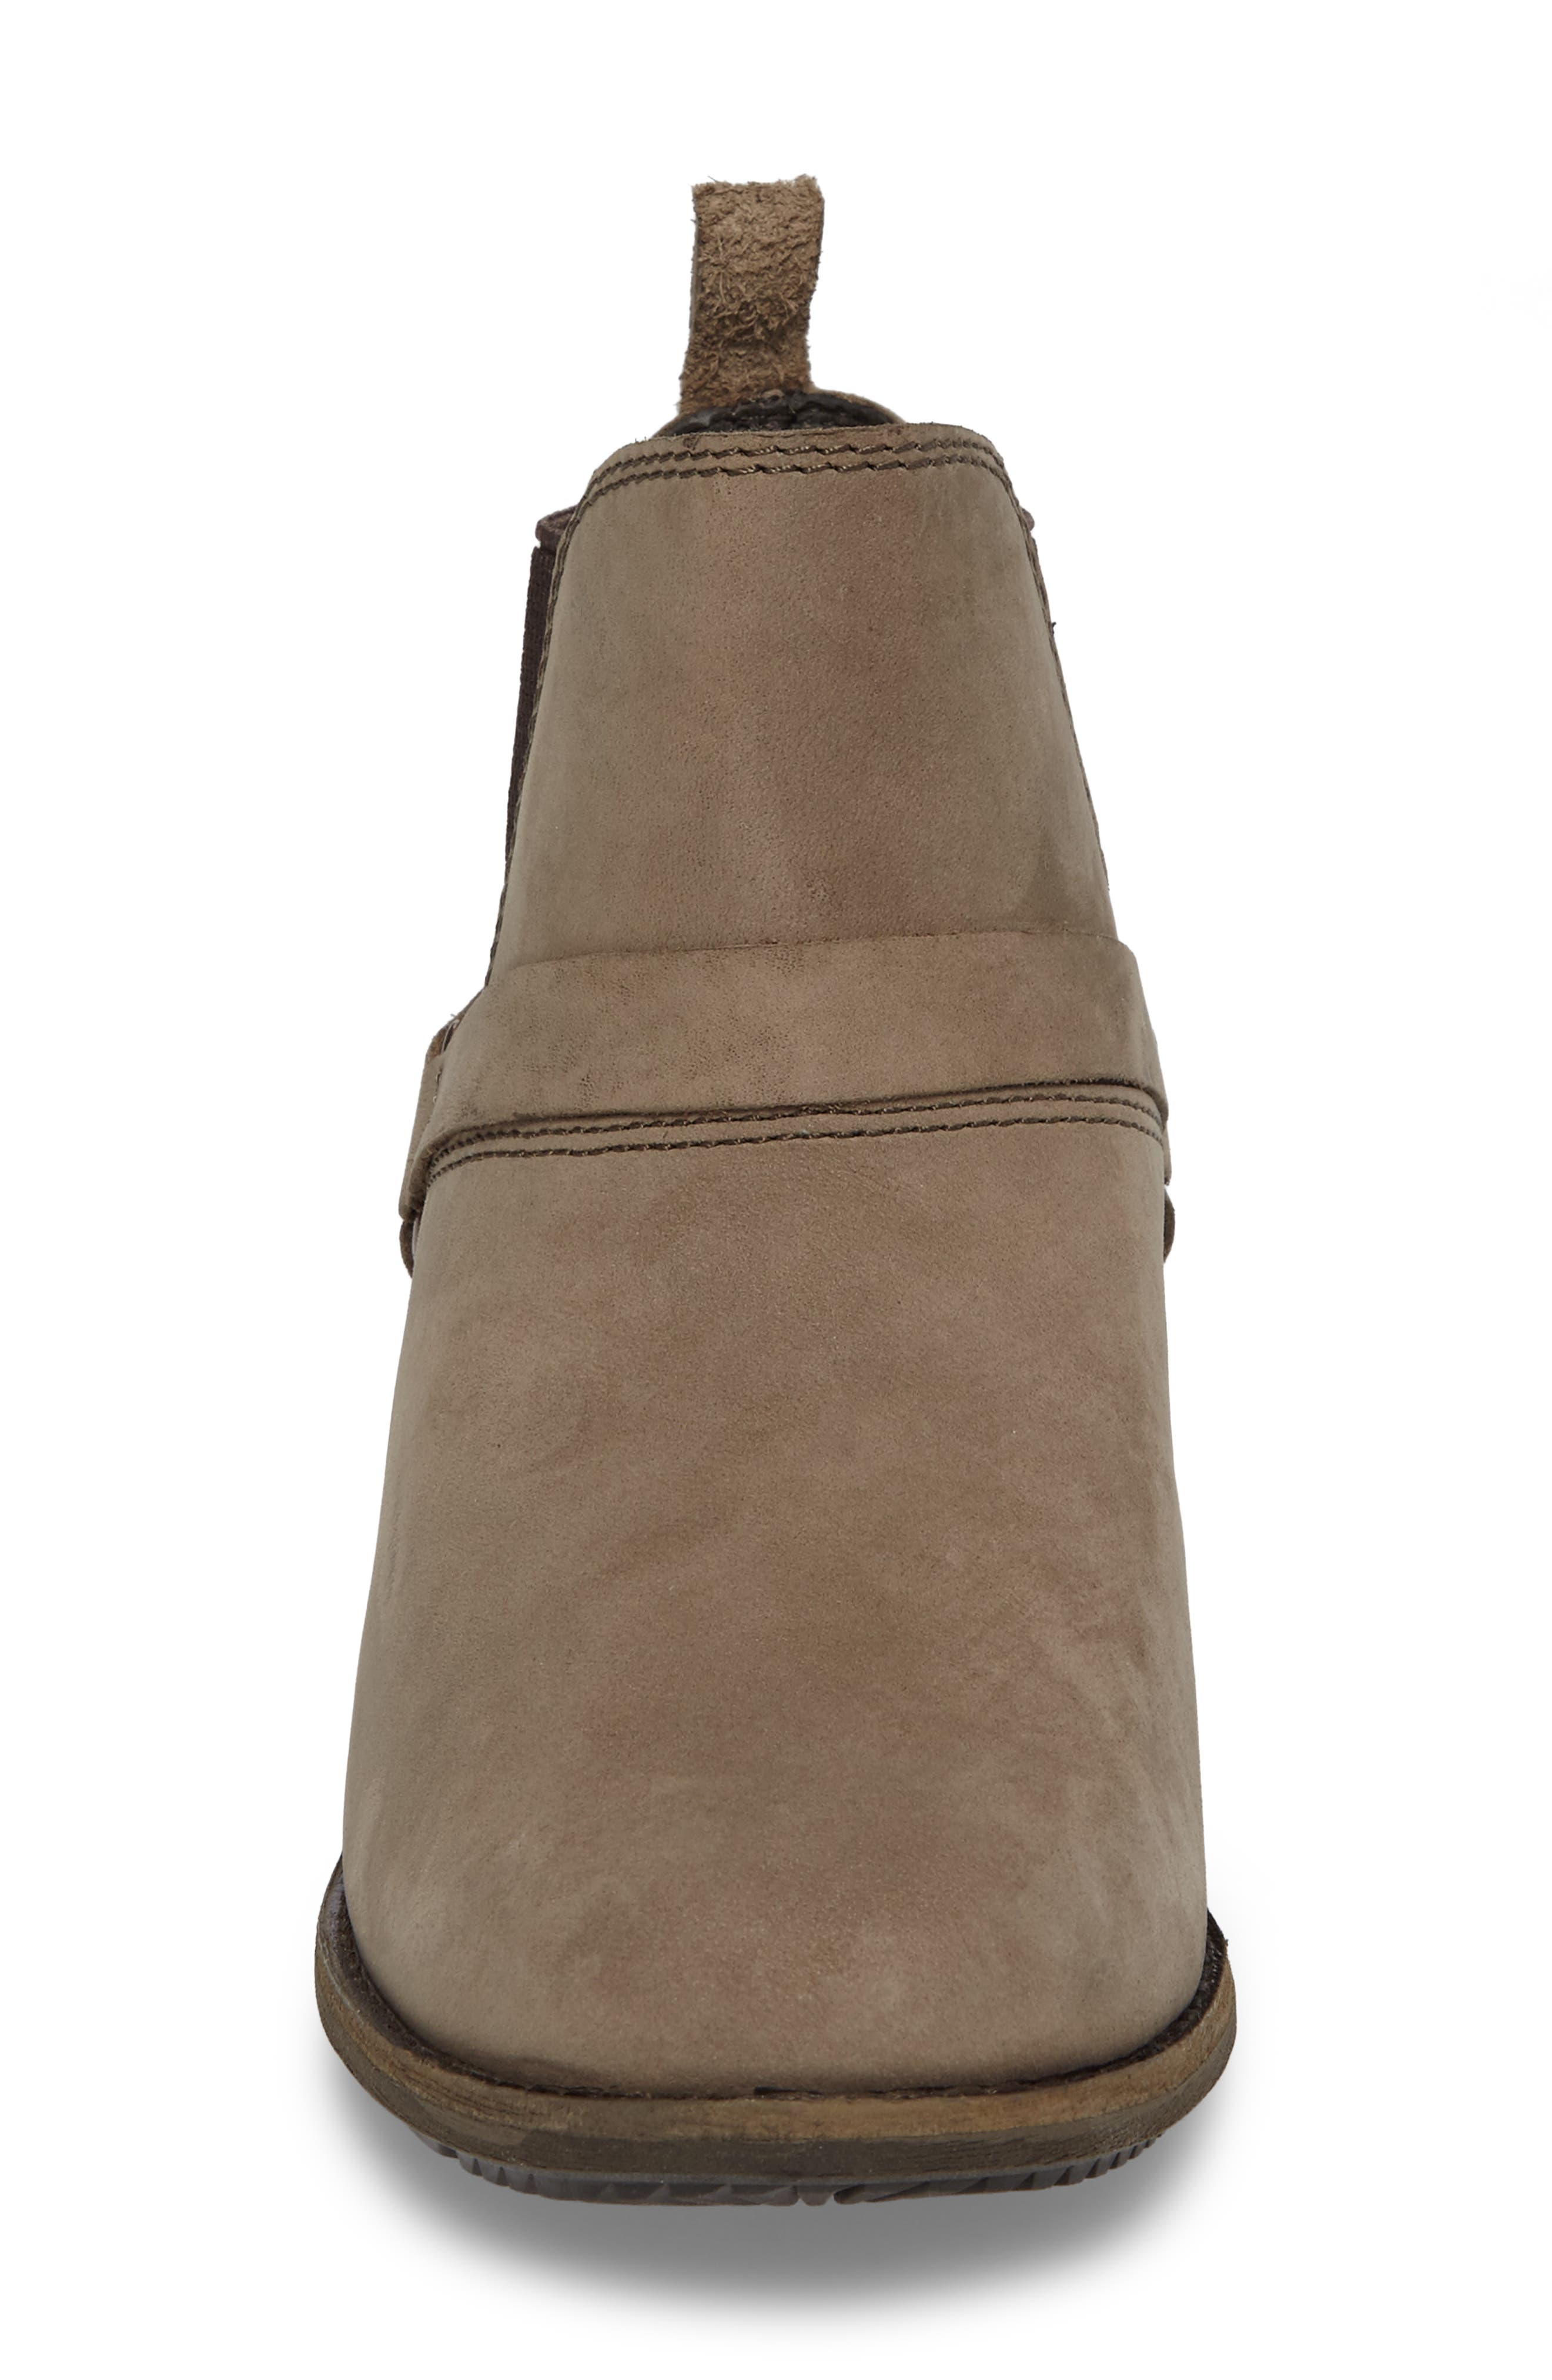 Dina La Vina Dos Waterproof Chelsea Boot,                             Alternate thumbnail 4, color,                             Bungee Cord Leather